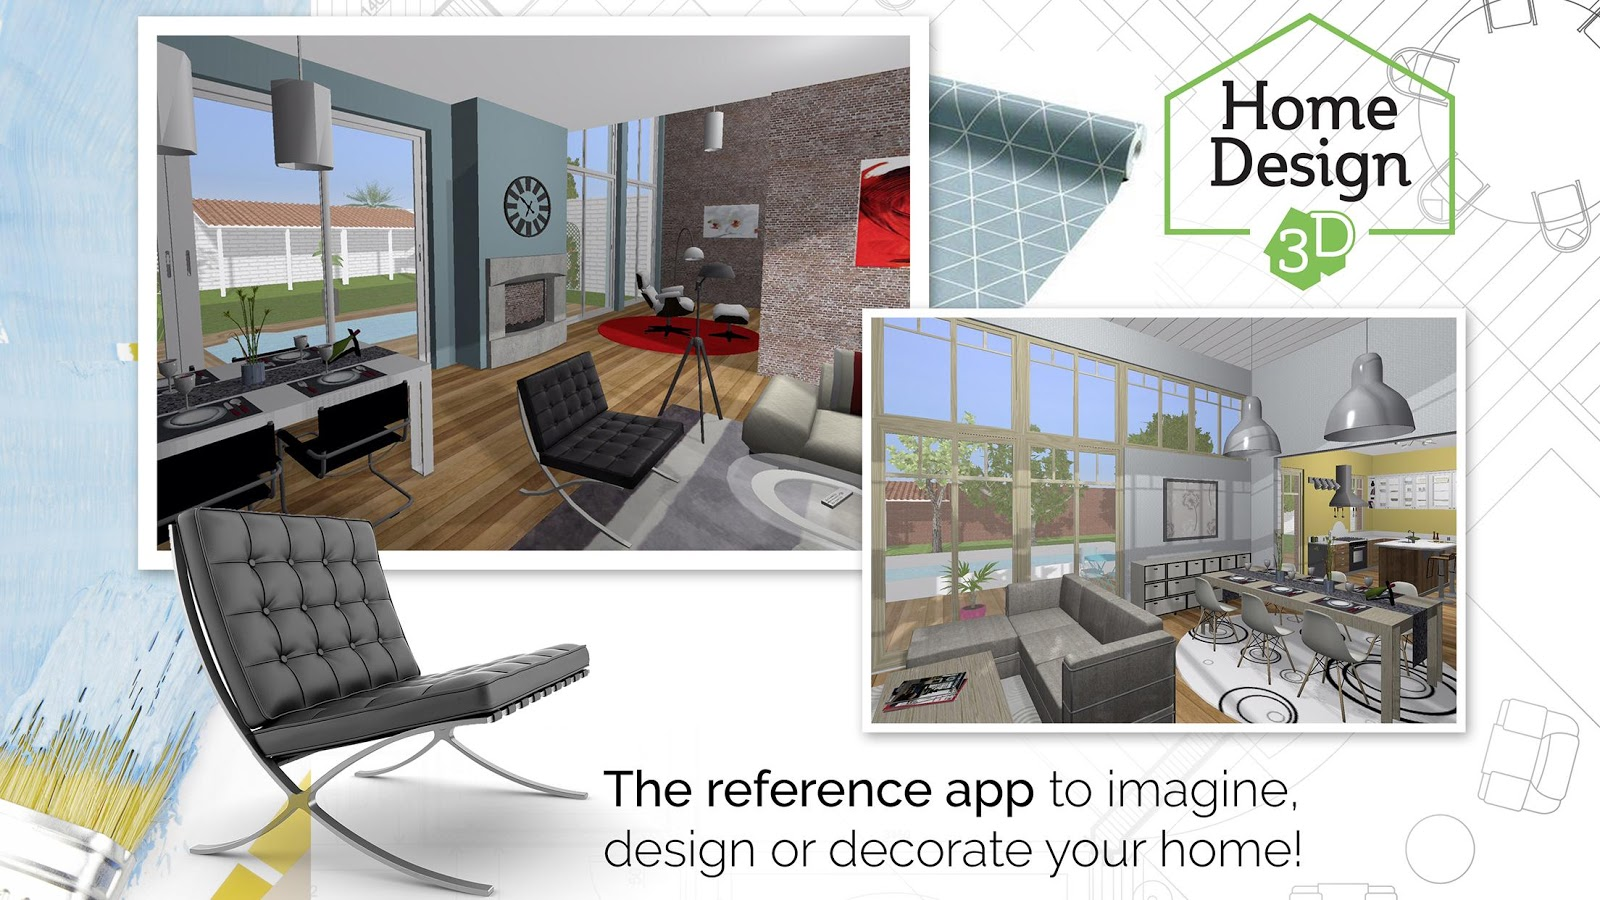 Home design 3d freemium android apps on google play for 3d house design free